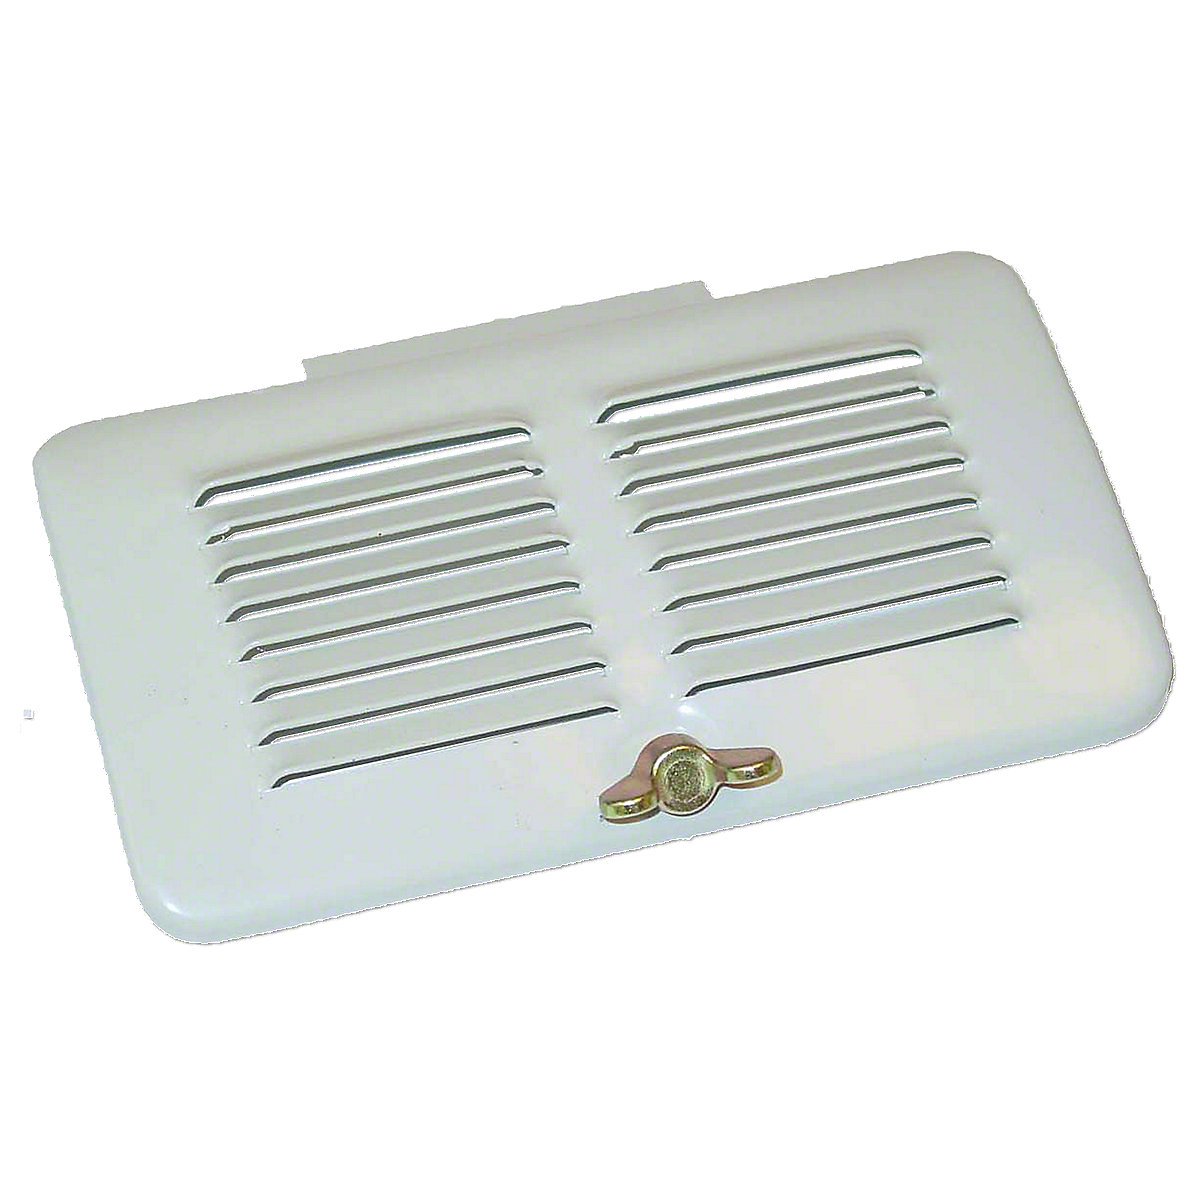 FDS007 Air Cleaner Grill Door with thumb screw